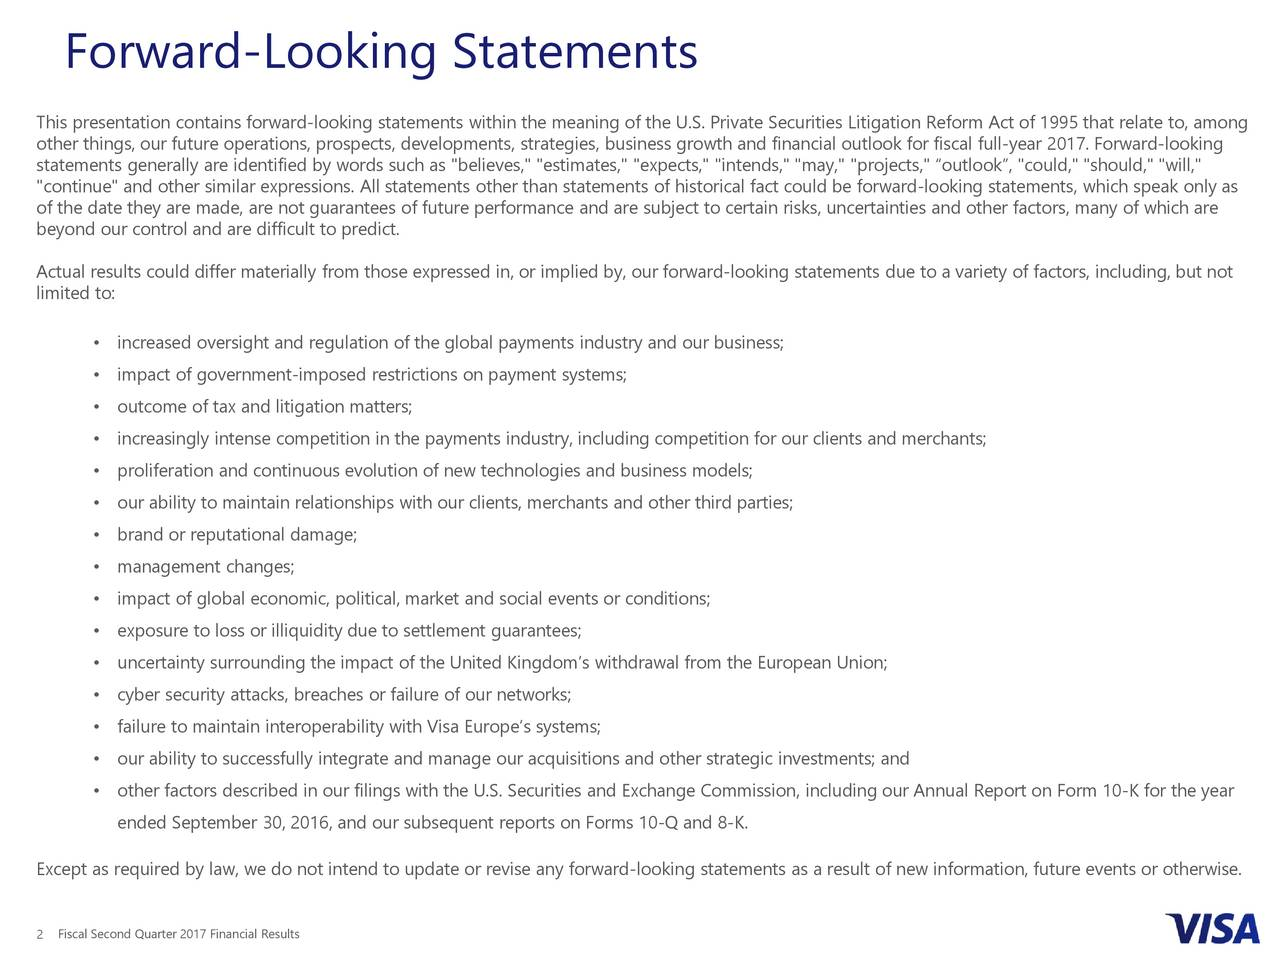 """This presentation contains forward-looking statements within the meaning of the U.S. Private Securities Litigation Reform Act of 1995 that relate to, among other things, our future operations, prospects, developments, strategies, business growth and financial outlook for fiscal full-year 2017. Forward-looking statements generally are identified by words such as """"believes,"""" """"estimates,"""" """"expects,"""" """"intends,"""" """"may,"""" """"projects,"""" outlook, """"could,"""" """"should,"""" """"will,"""" """"continue"""" and other similar expressions. All statements other than statements of historical fact could be forward-looking statements, which speak only as of the date they are made, are not guarantees of future performance and are subject to certain risks, uncertainties and other factors, many of which are beyond our control and are difficult to predict. Actual results could differ materially from those expressed in, or implied by, our forward-looking statements due to a variety of factors, including, but not limited to: increased oversight and regulation of the global payments industry and our business; impact of government-imposed restrictions on payment systems; outcome of tax and litigation matters; increasingly intense competition in the payments industry, including competition for our clients and merchants; proliferation and continuous evolution of new technologies and business models; our ability to maintain relationships with our clients, merchants and other third parties; brand or reputational damage; management changes; impact of global economic, political, market and social events or conditions; exposure to loss or illiquidity due to settlement guarantees; uncertainty surrounding the impact of the United Kingdoms withdrawal from the European Union; cyber security attacks, breaches or failure of our networks; failure to maintain interoperability with Visa Europes systems; our ability to successfully integrate and manage our acquisitions and other strategic investments; and other factors described in"""